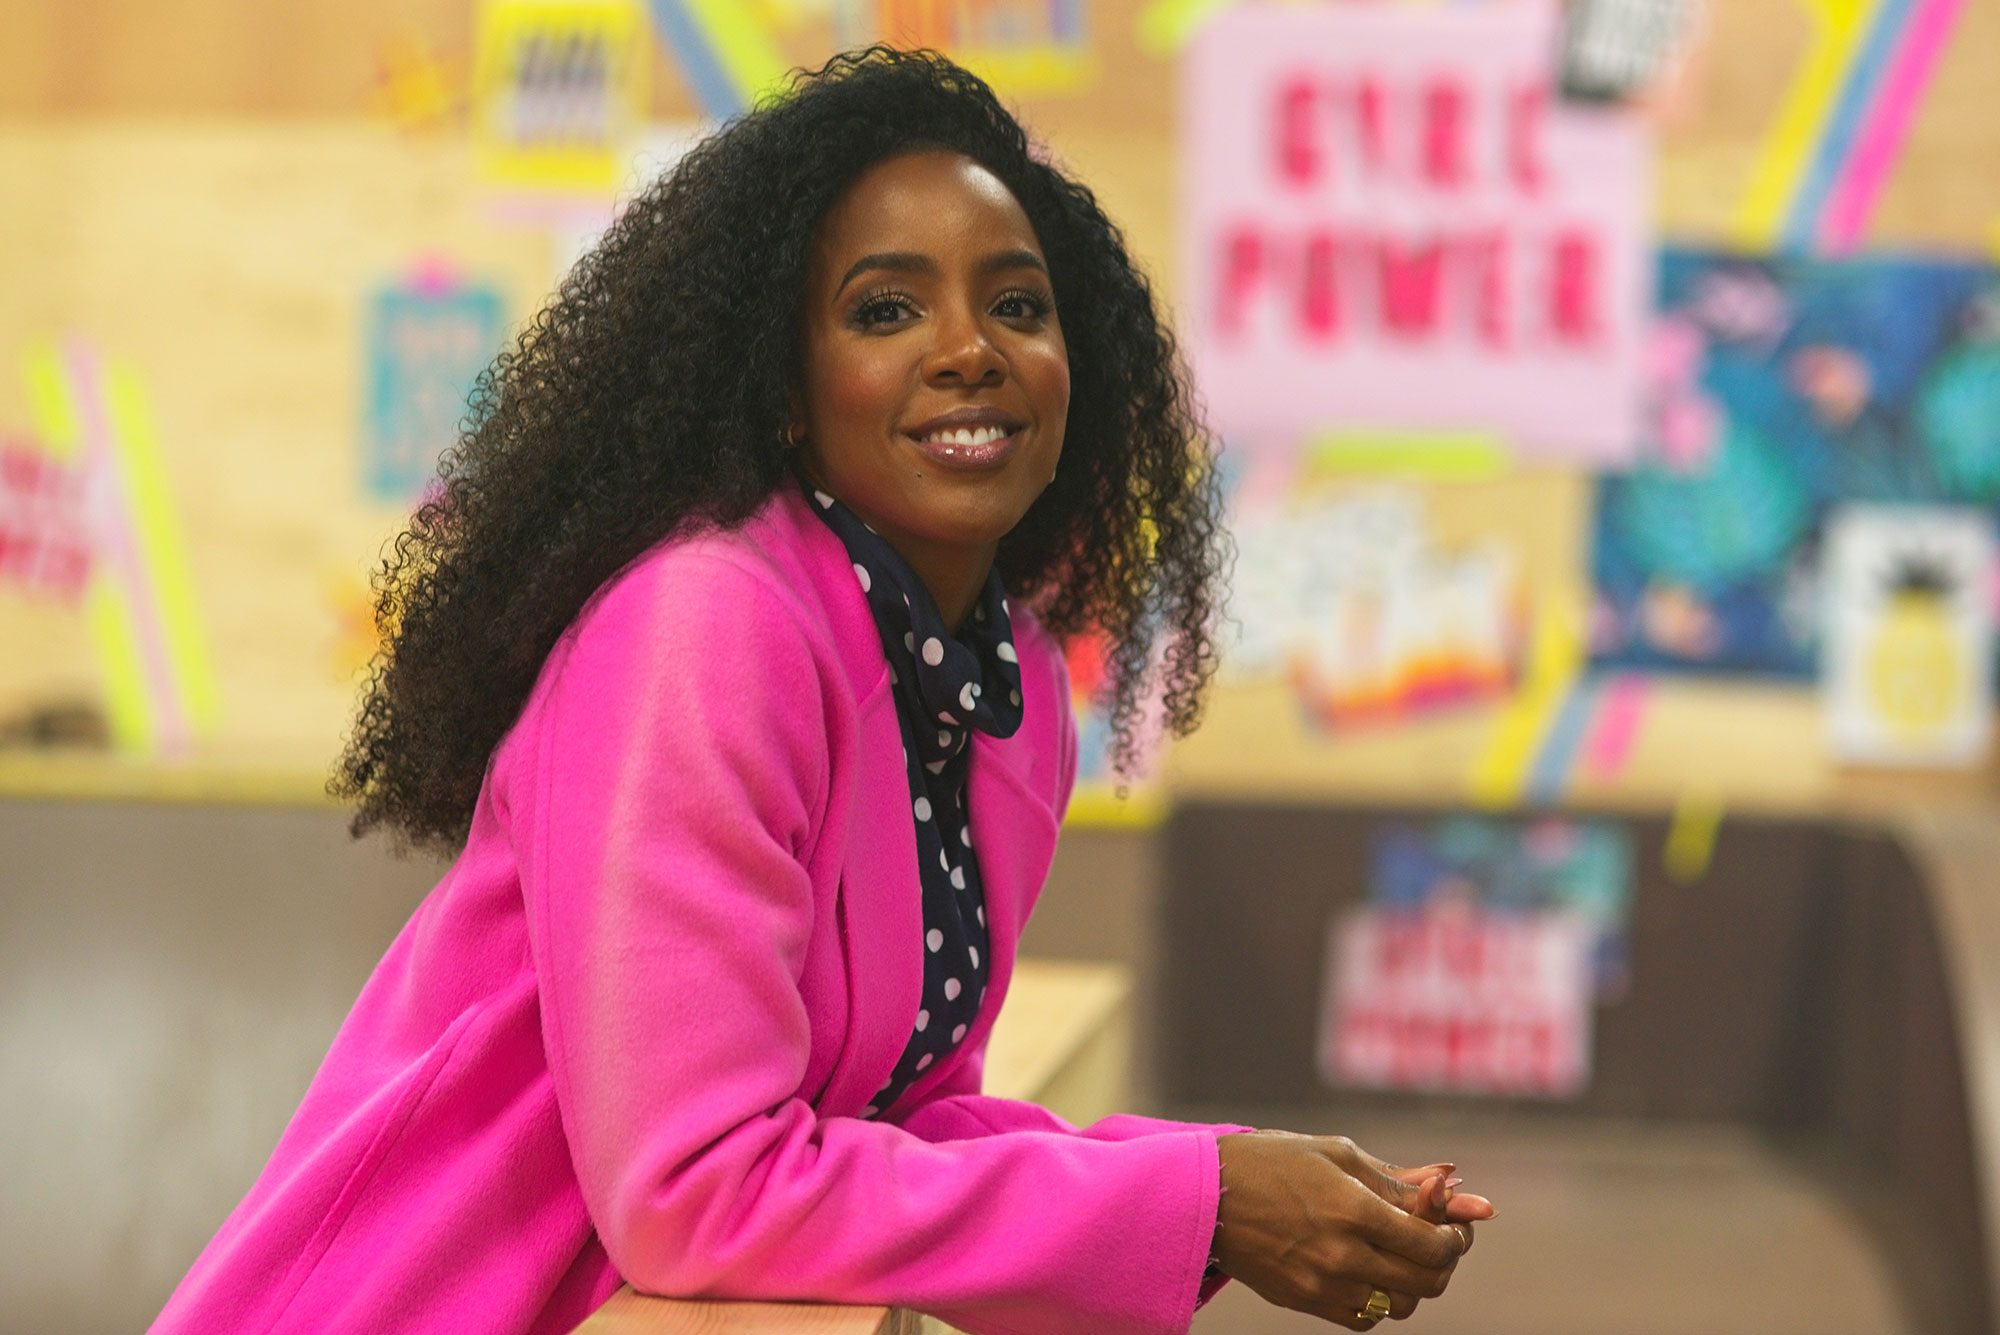 Kelly Rowland Shares Her top Favorite Hairstyles From Destiny's Child to Her Solo Career - Kelly Rowland